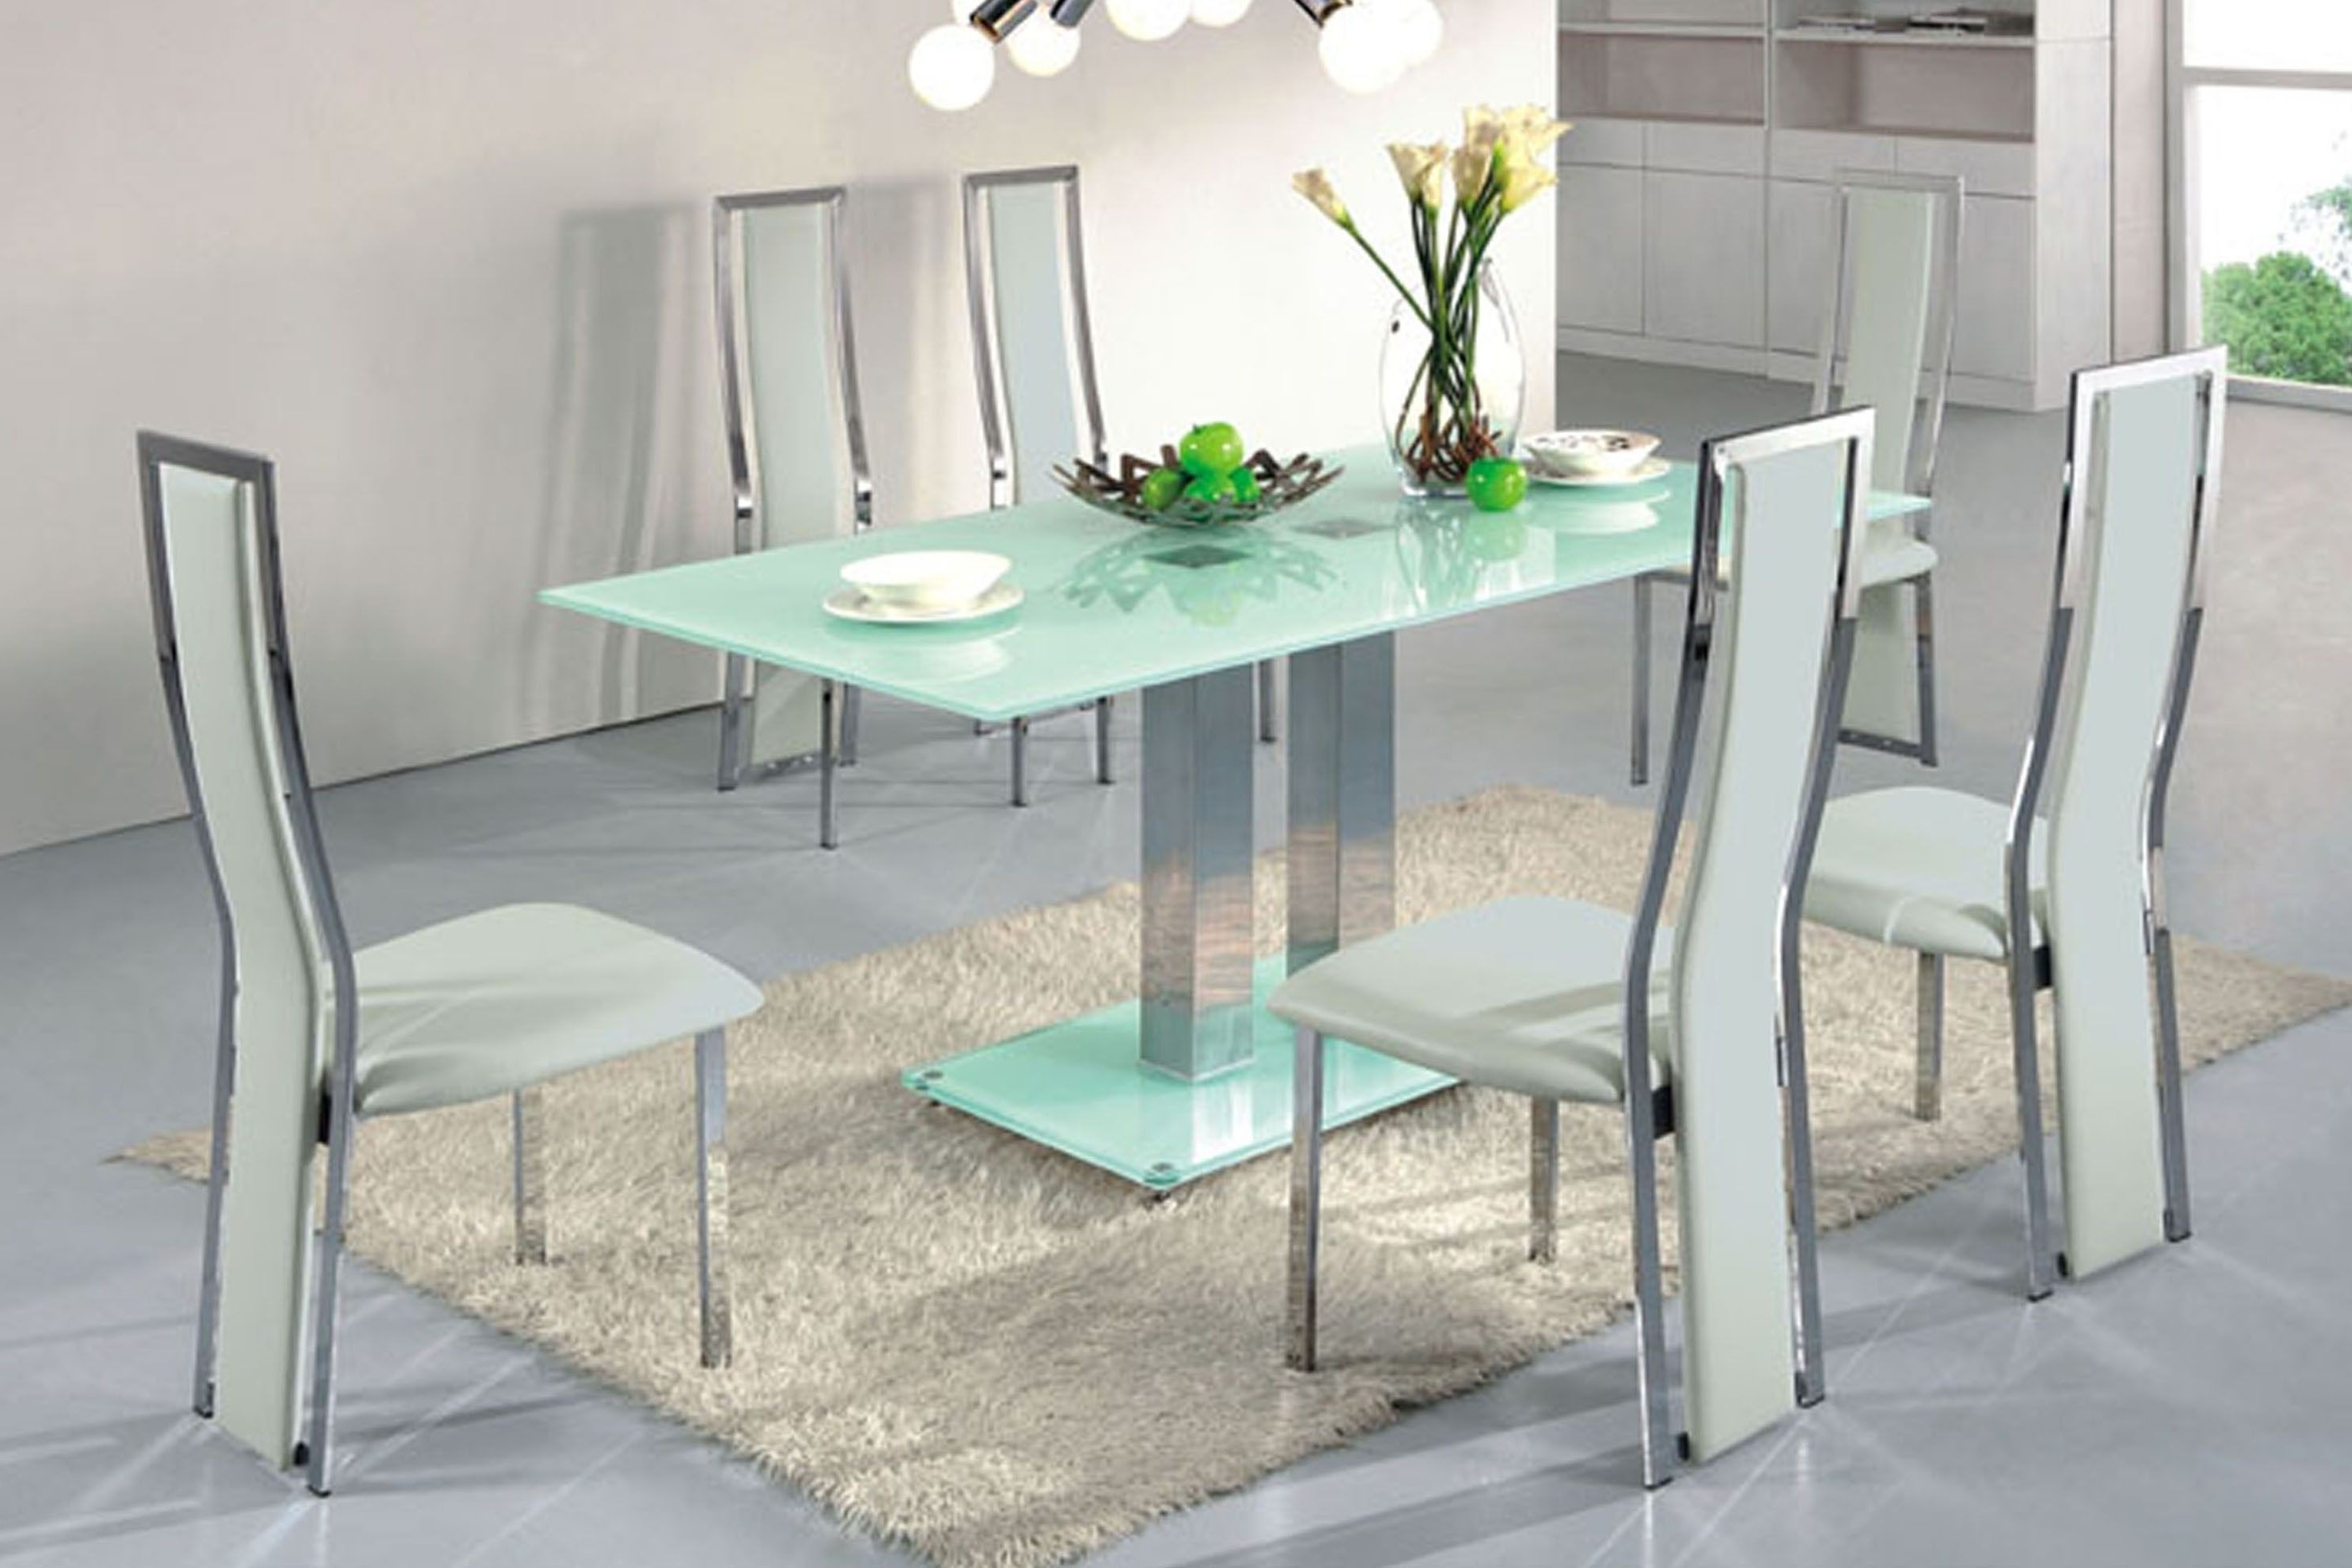 Smoked Glass Dining Tables And Chairs Intended For Most Current Round Smoked Glass Dining Table Elegant Modern Oval Glass Top Dining (View 20 of 25)